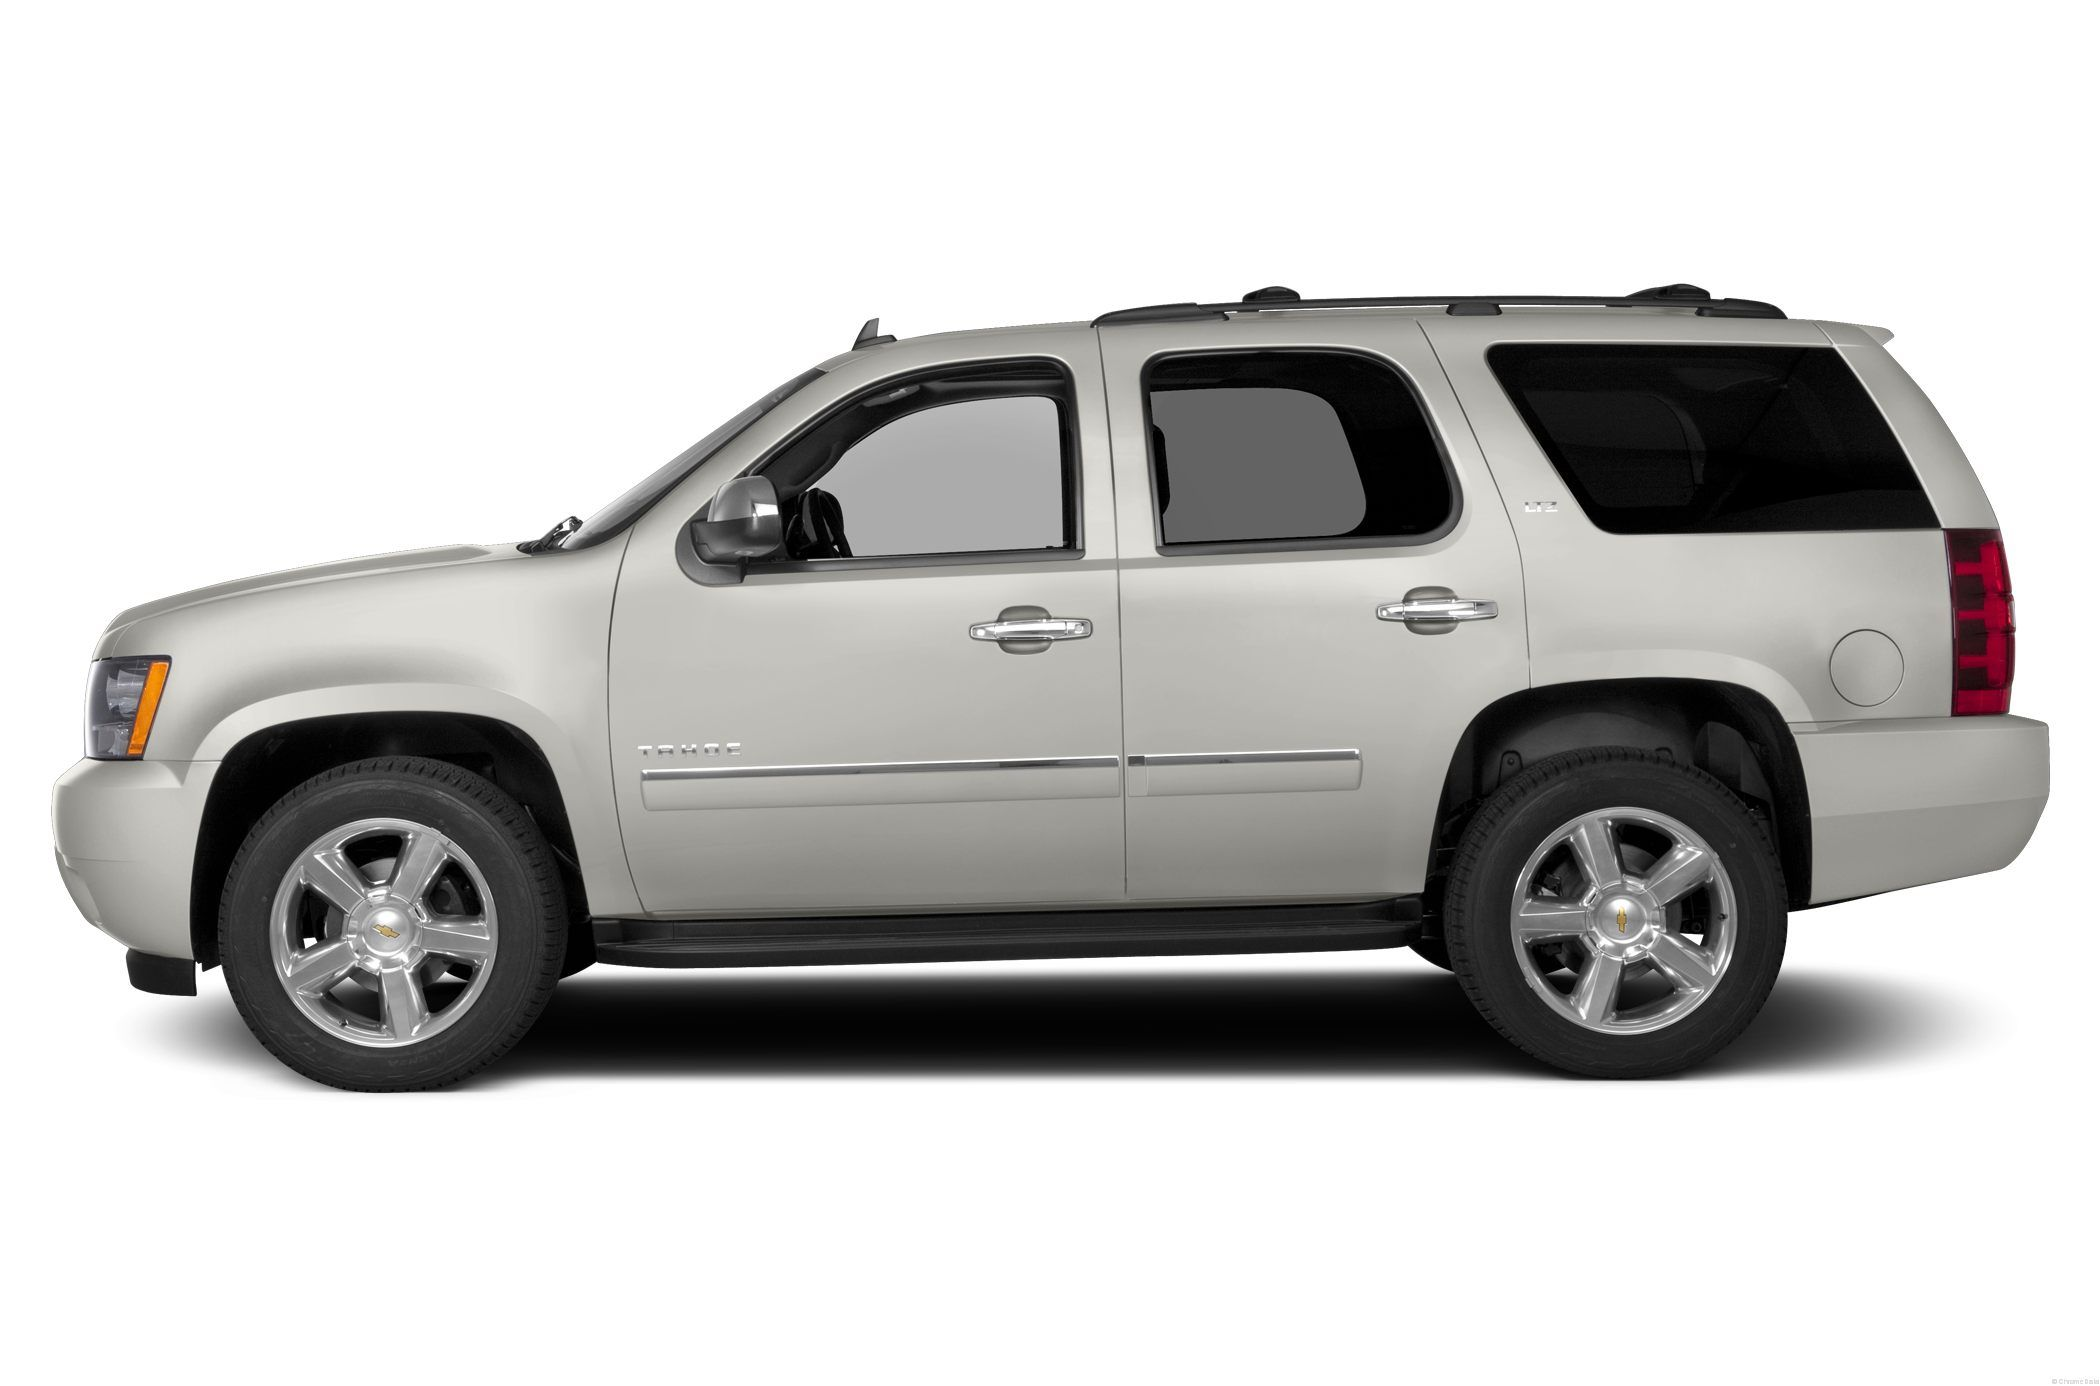 chevy tahoe | 9 Chevrolet Tahoe Redesign Pictures | Autos ... | 2014 chevrolet tahoe